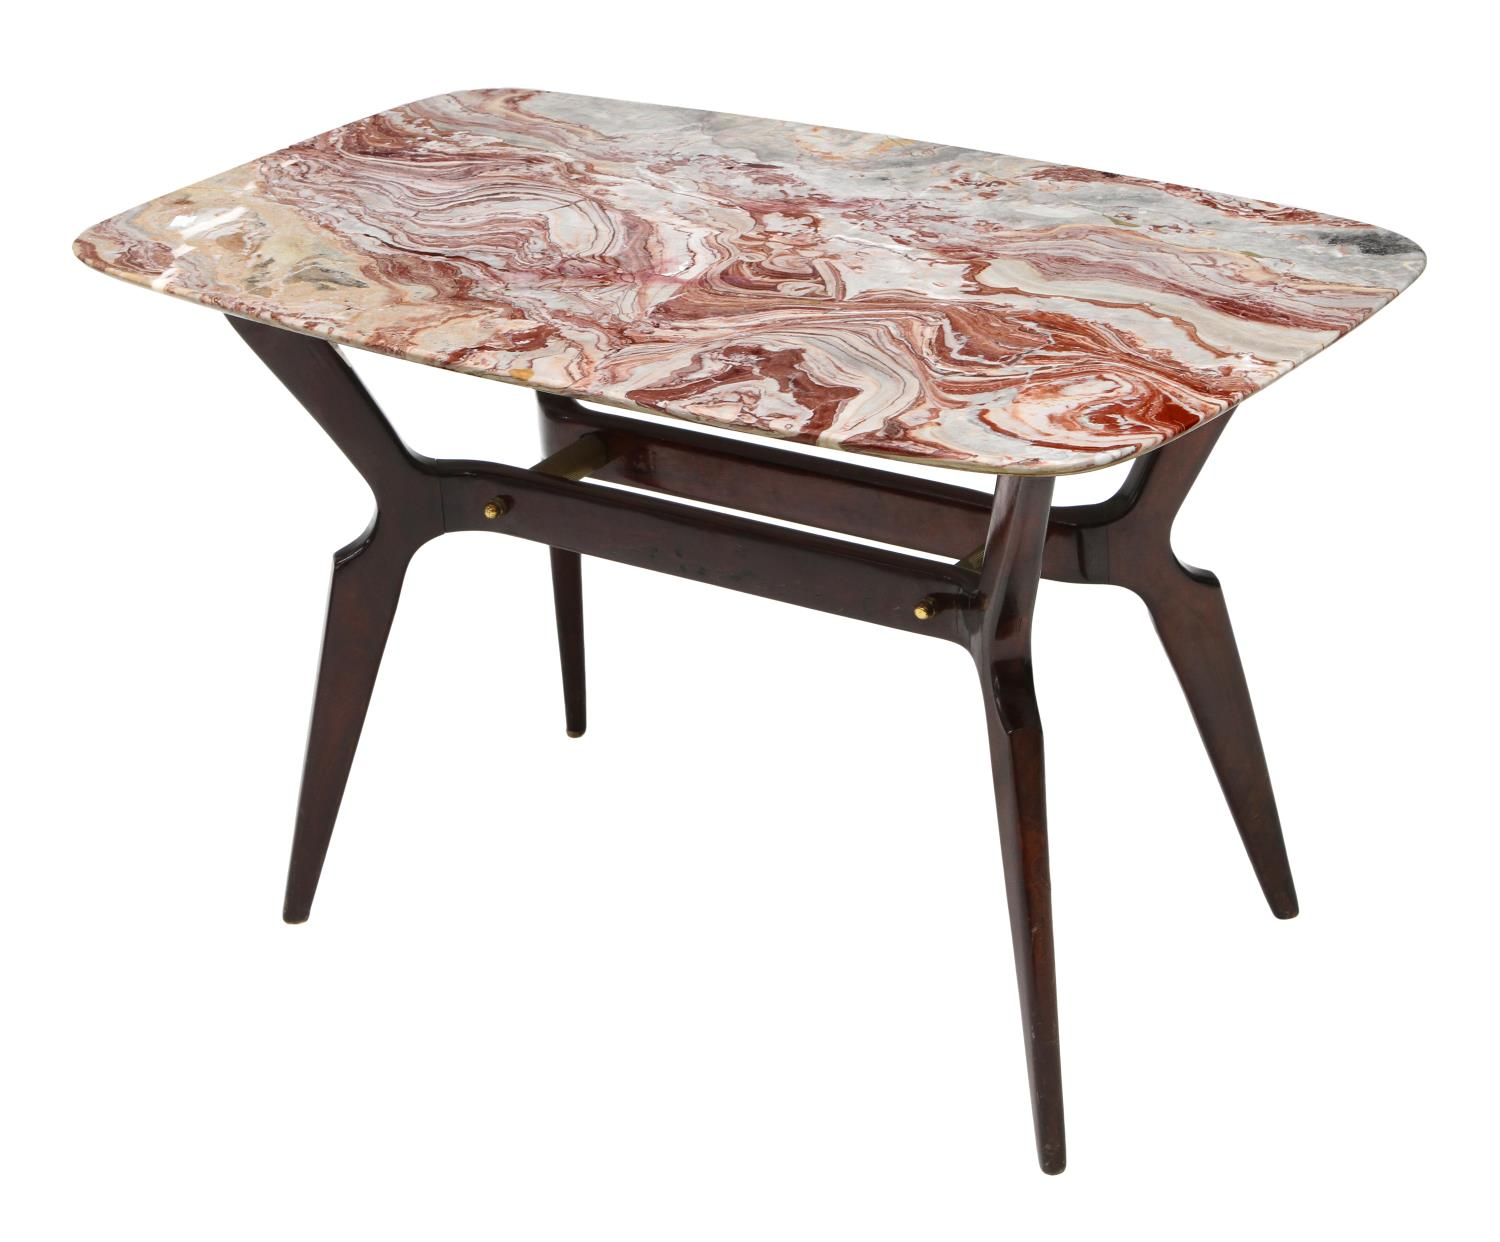 Italian Mid Century Modern Marble Top Coffee Table Italian Design Couture Estates Austin